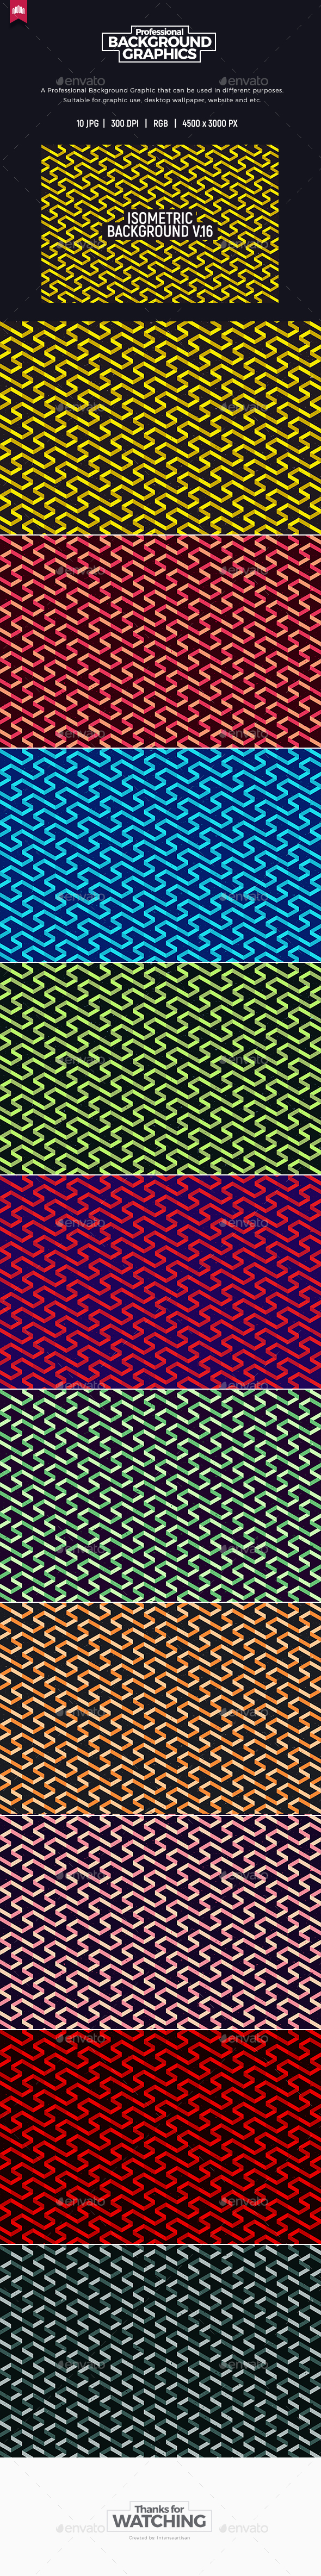 Isometric Background V.16 - Patterns Backgrounds